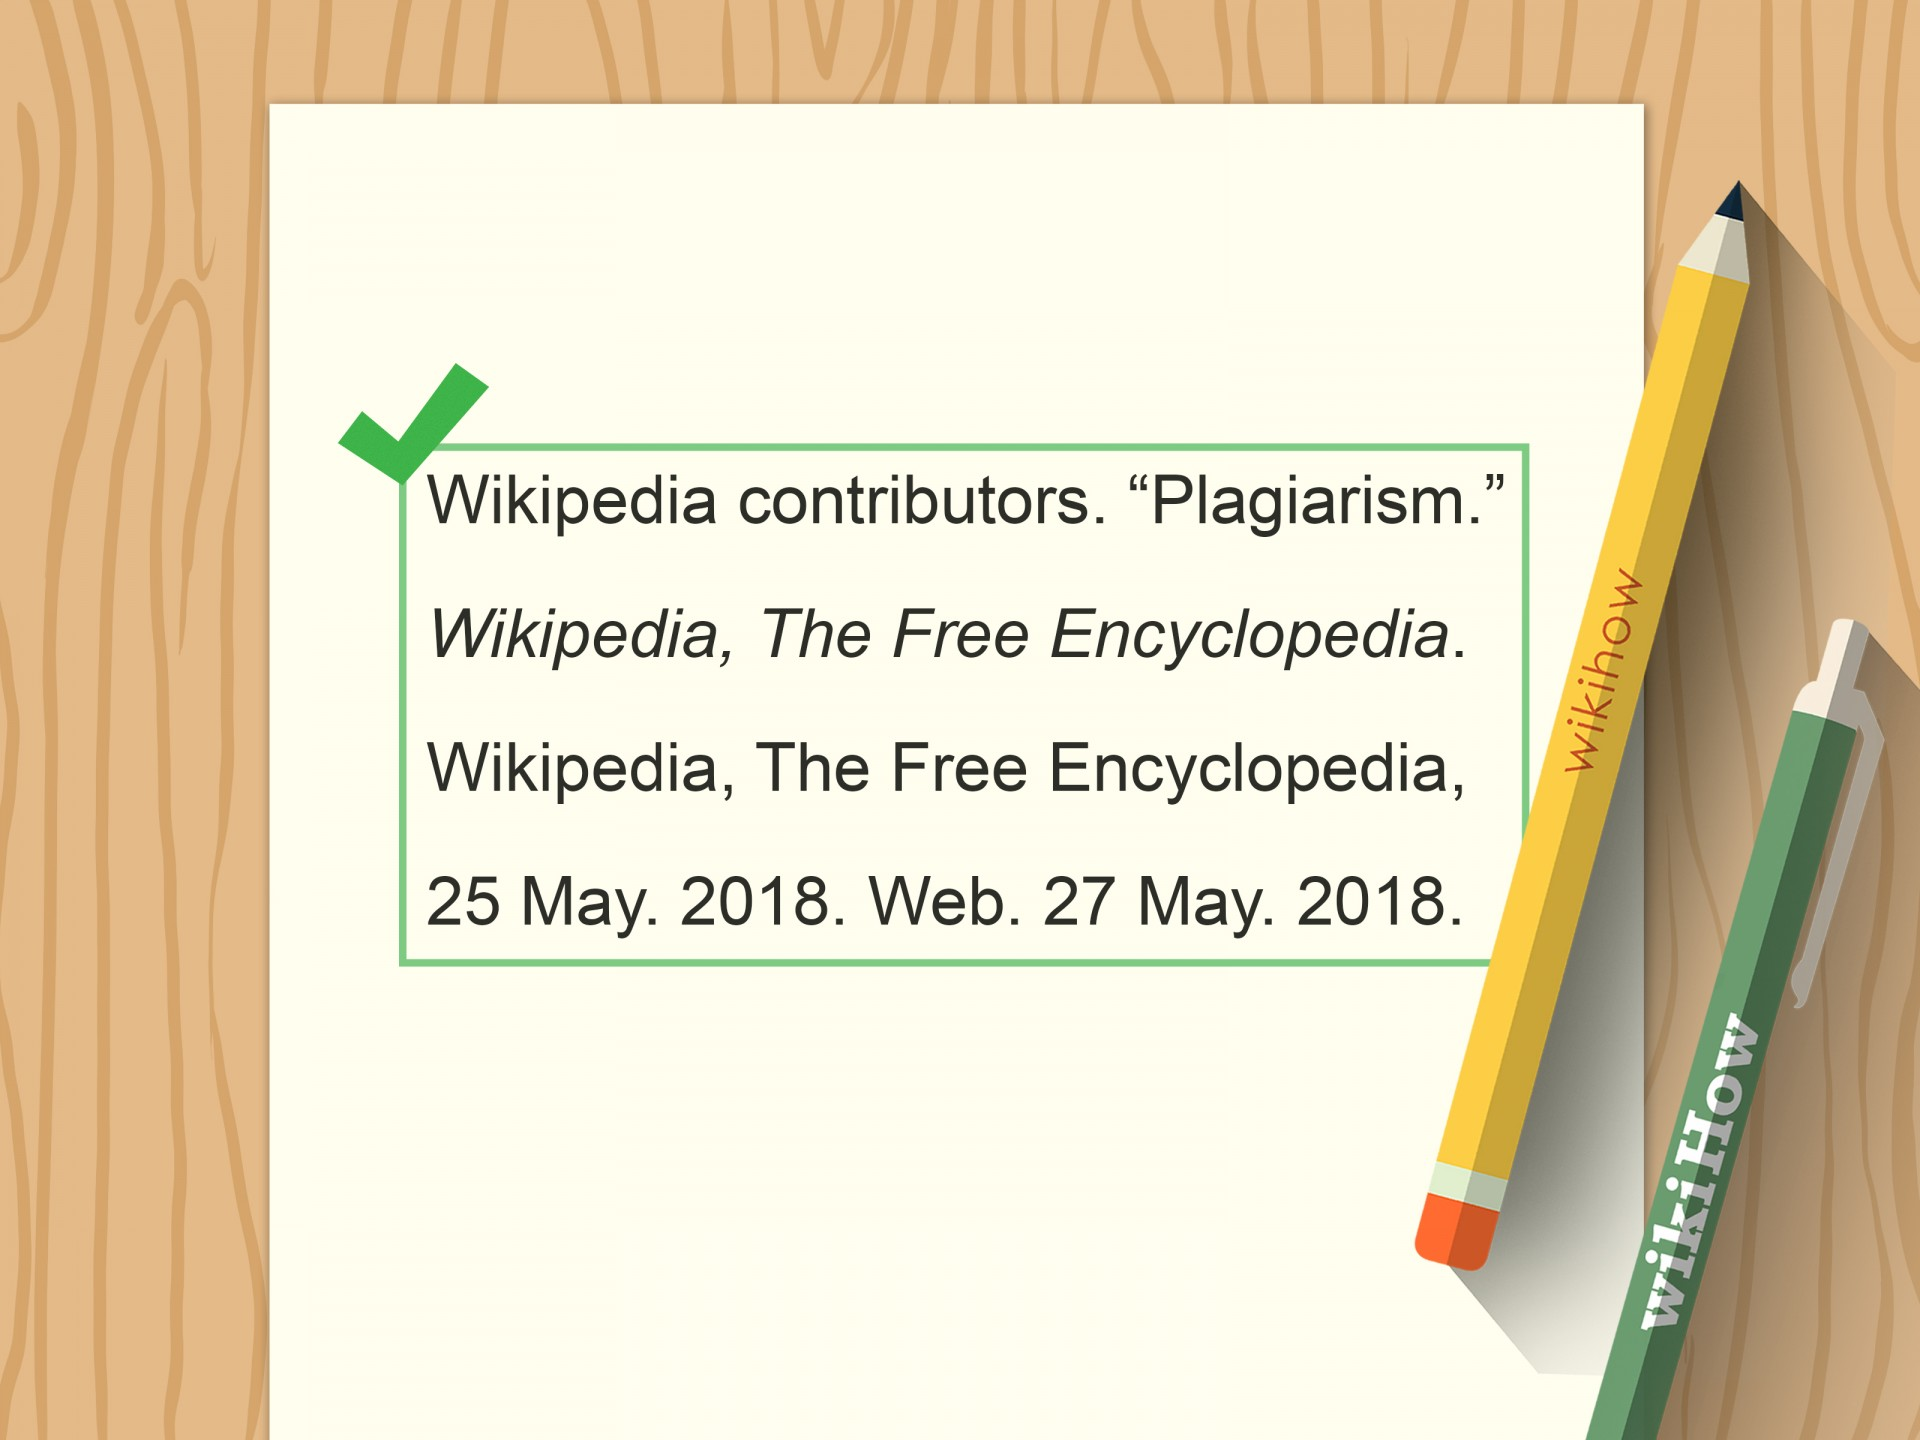 026 Mla Research Paper Citation Format Cite Wikipedia Article In Step Imposing Text 1920